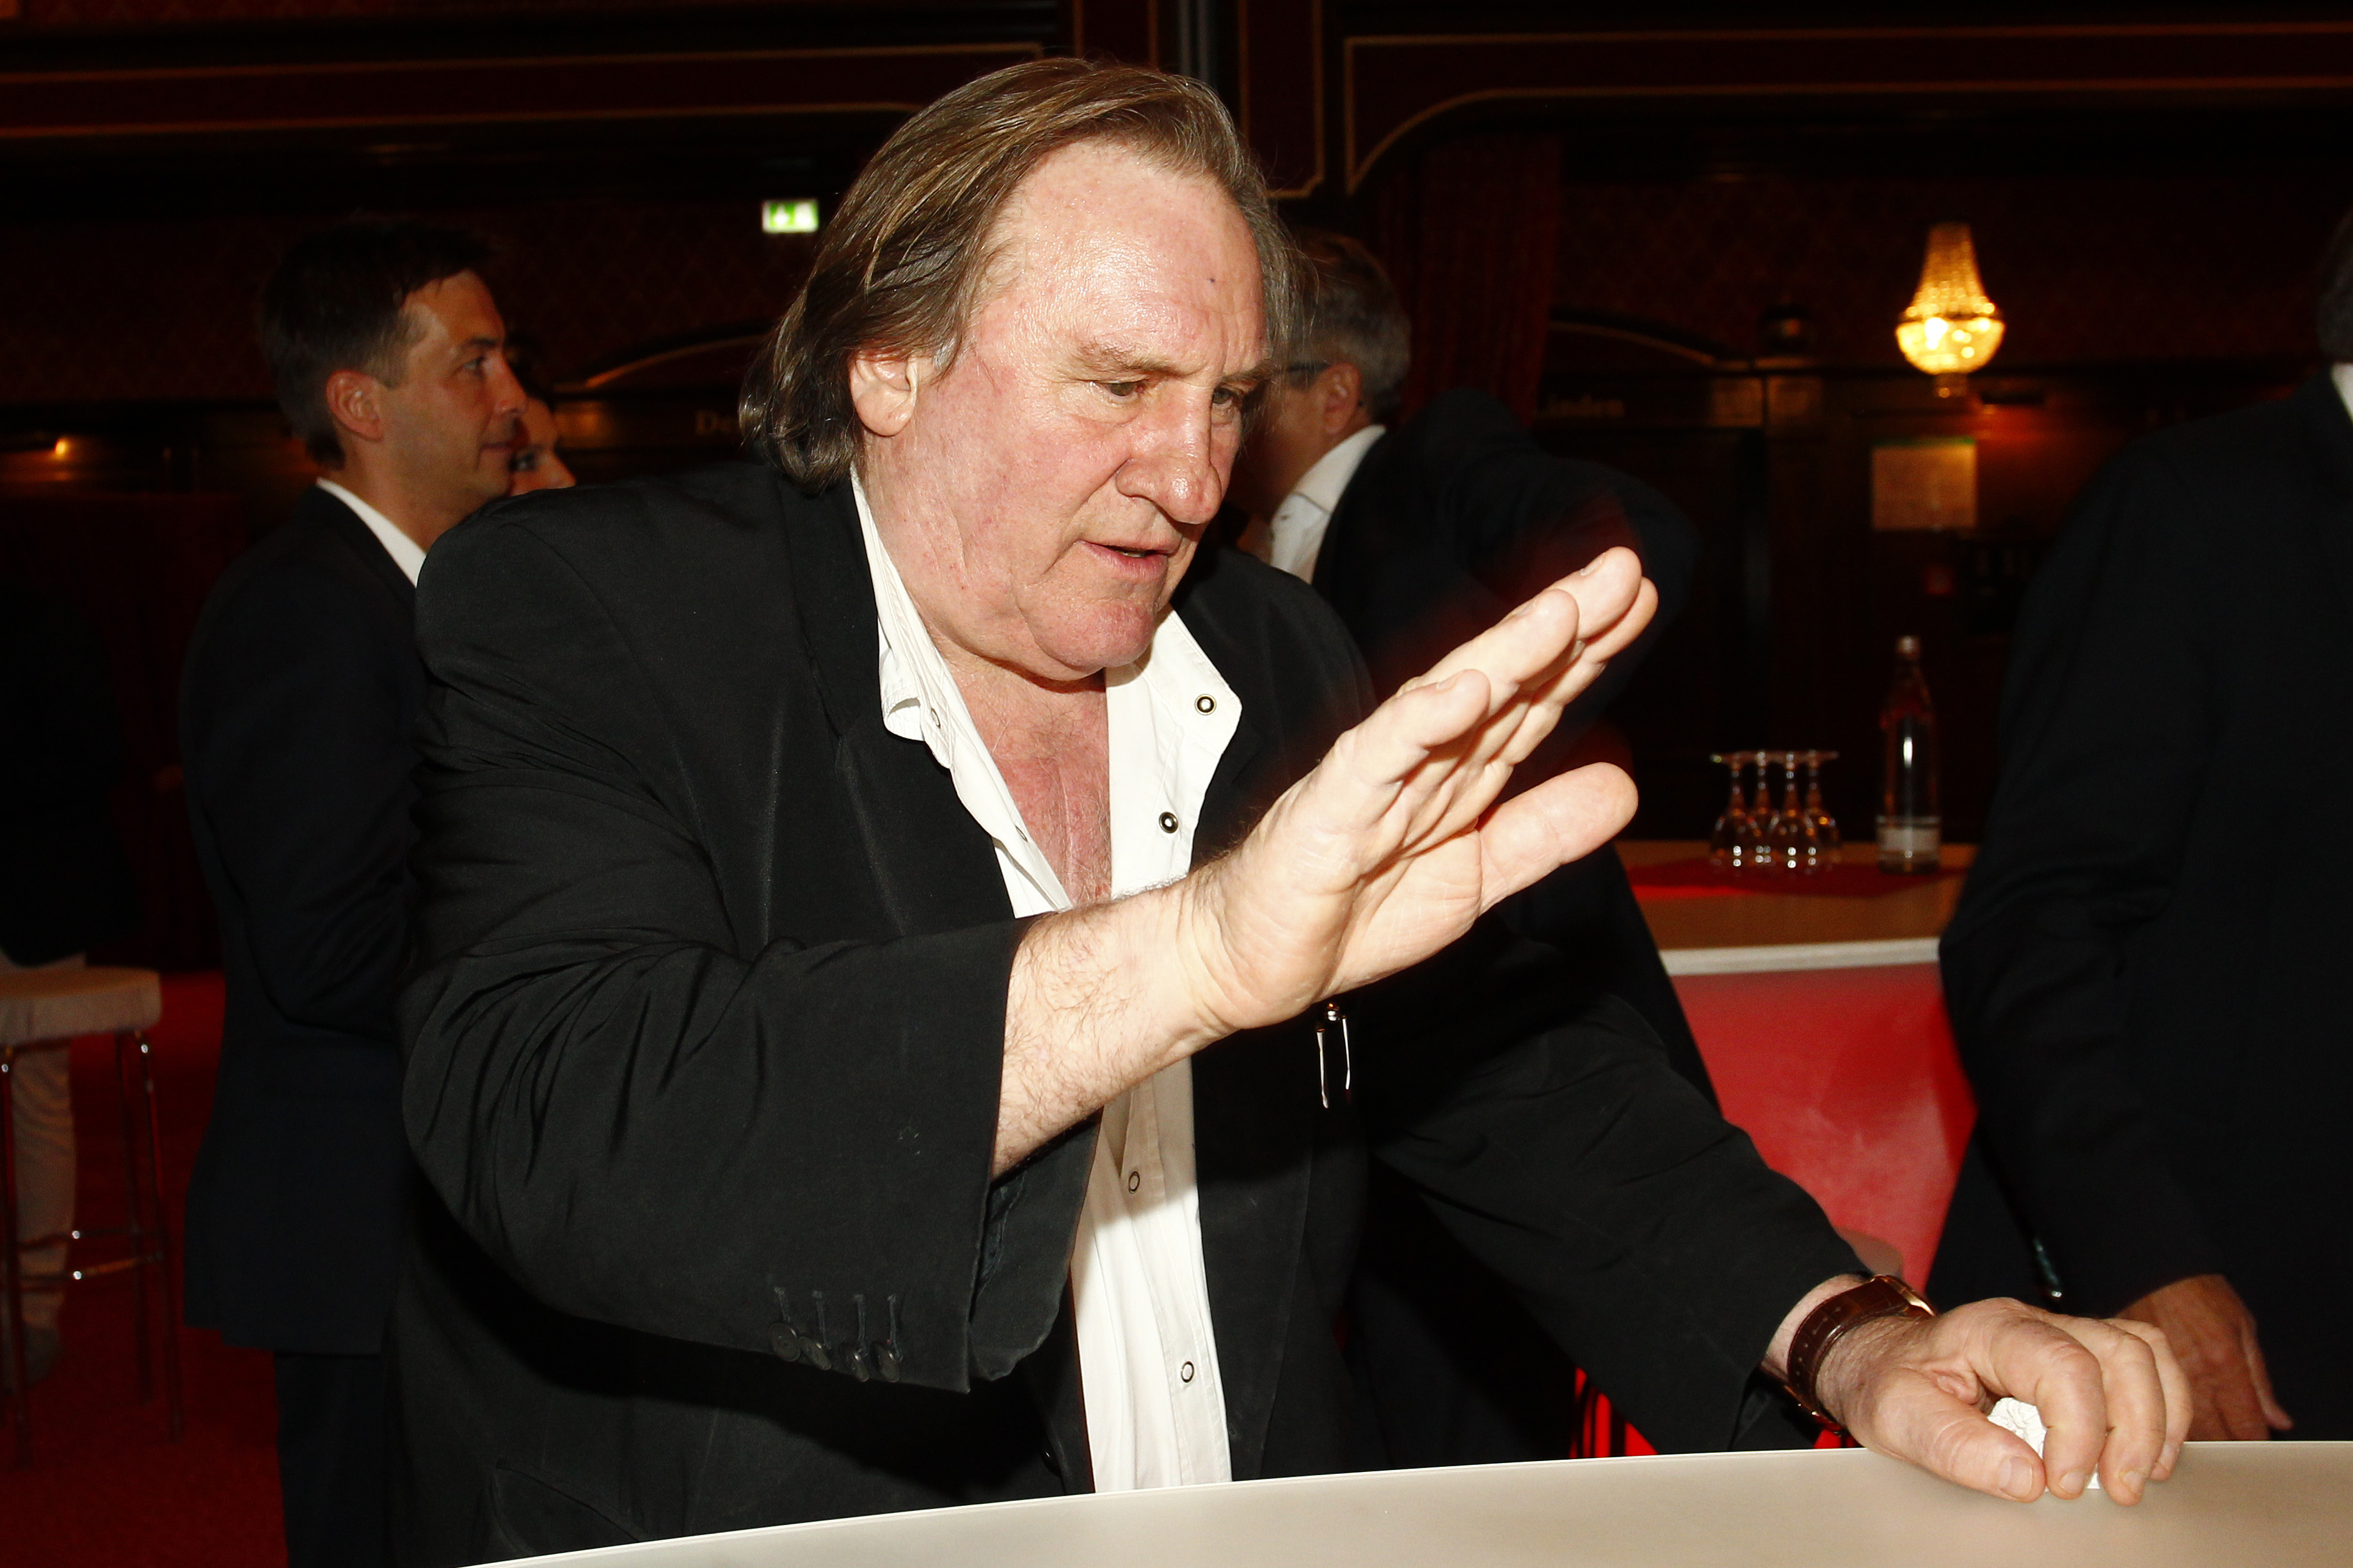 French actor Gerard Depardieu has been accused of raping a 22-year-old actress earlier this month (Photo credit: Getty Images)